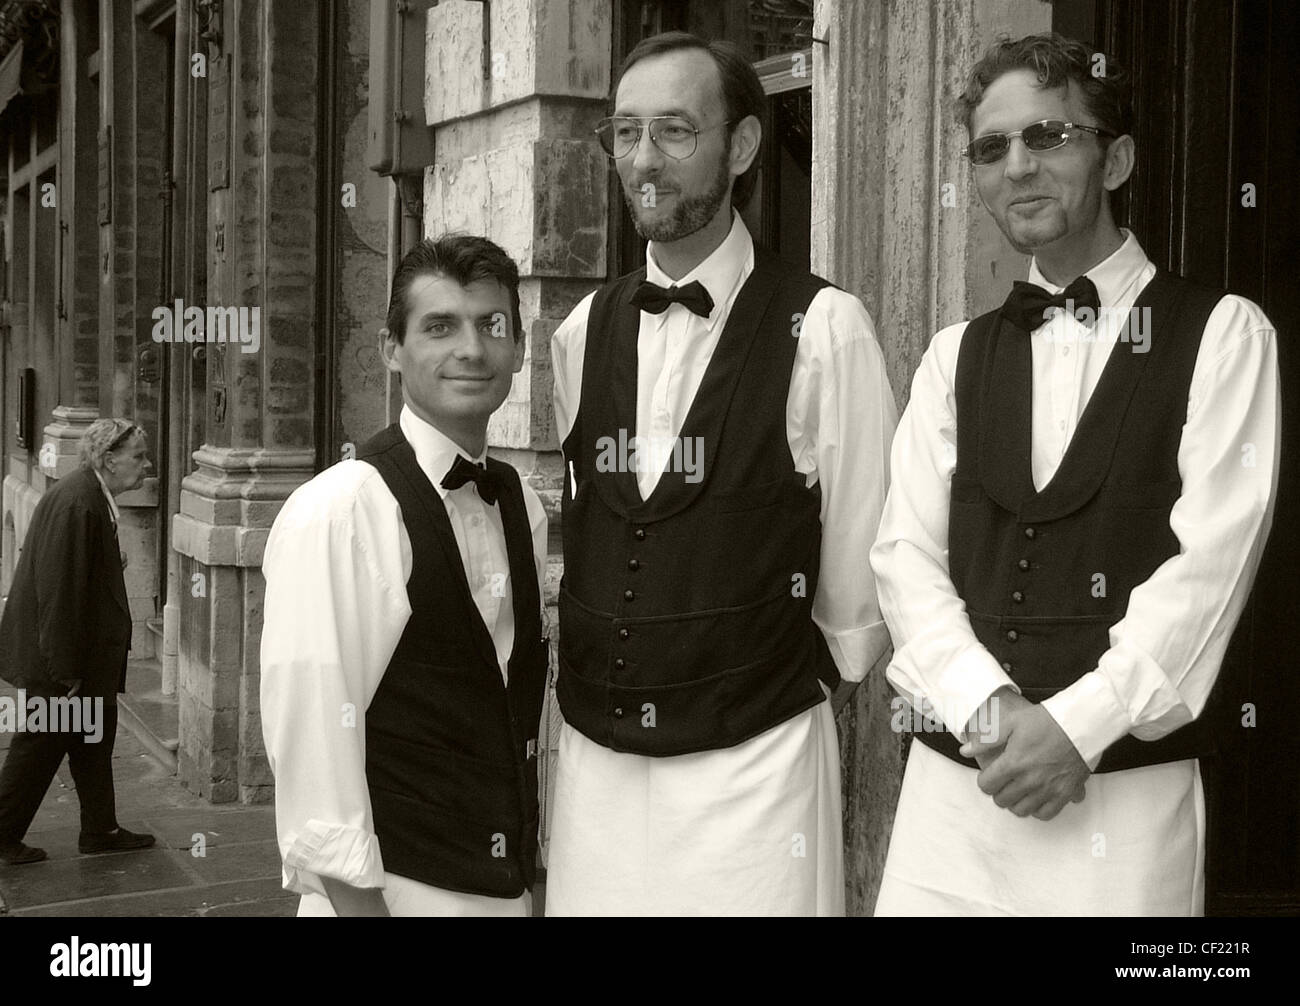 Three,waiters,of,various,sizes,in,B/W,black,and,white,&,gotonysmith,3,sizes,staff,catering,bow,tie,jackets,waistcoats,waist,coats,bowtie,Brussels,London,strange,best,most,interesting,special,something,gotonysmith,Buy Pictures of,Buy Images Of